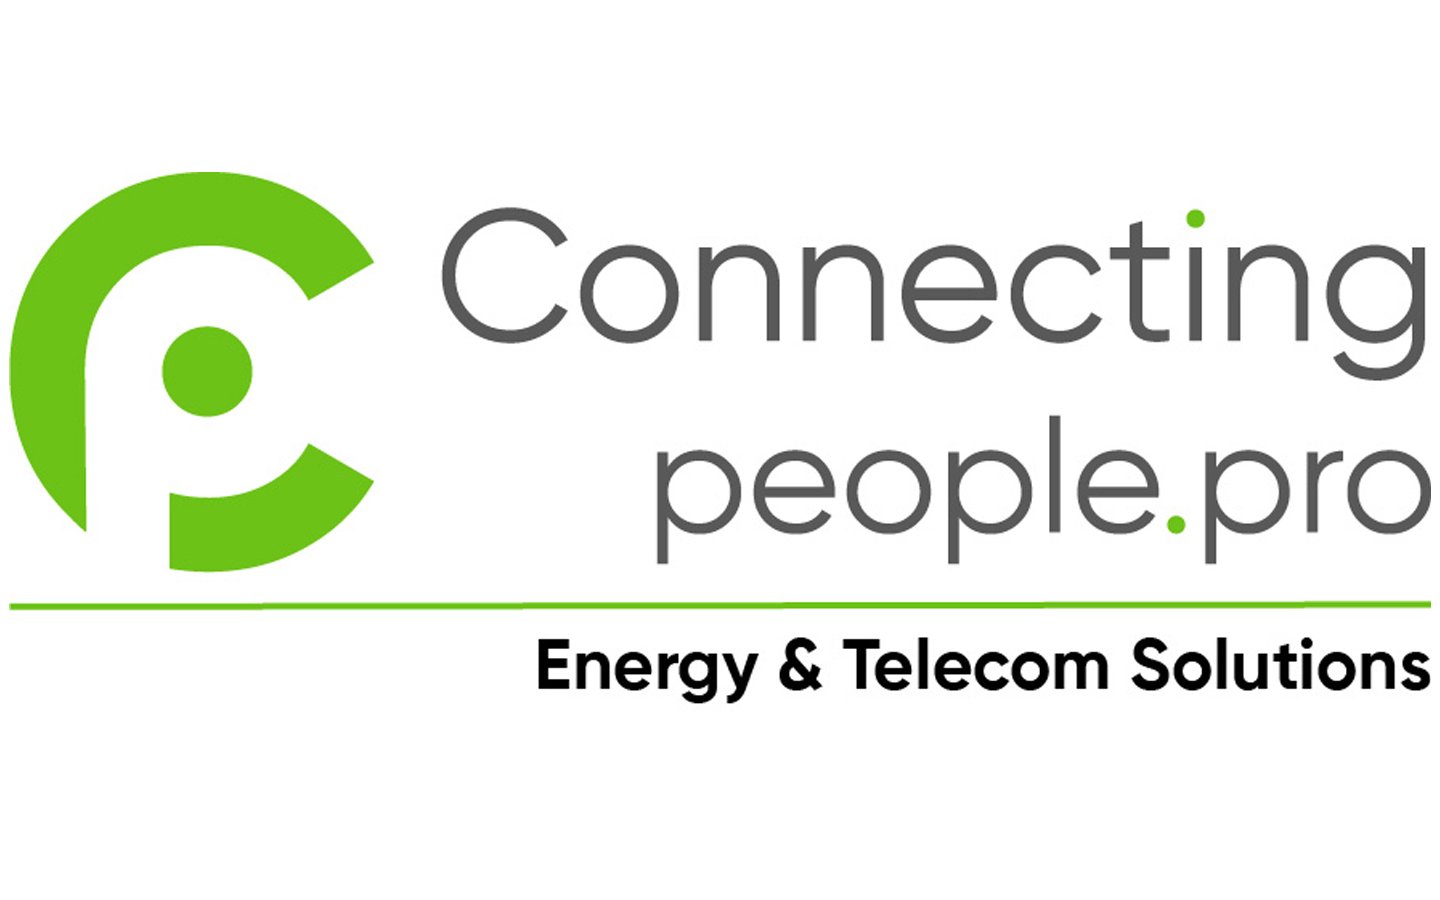 ConnectingpeoplePRO